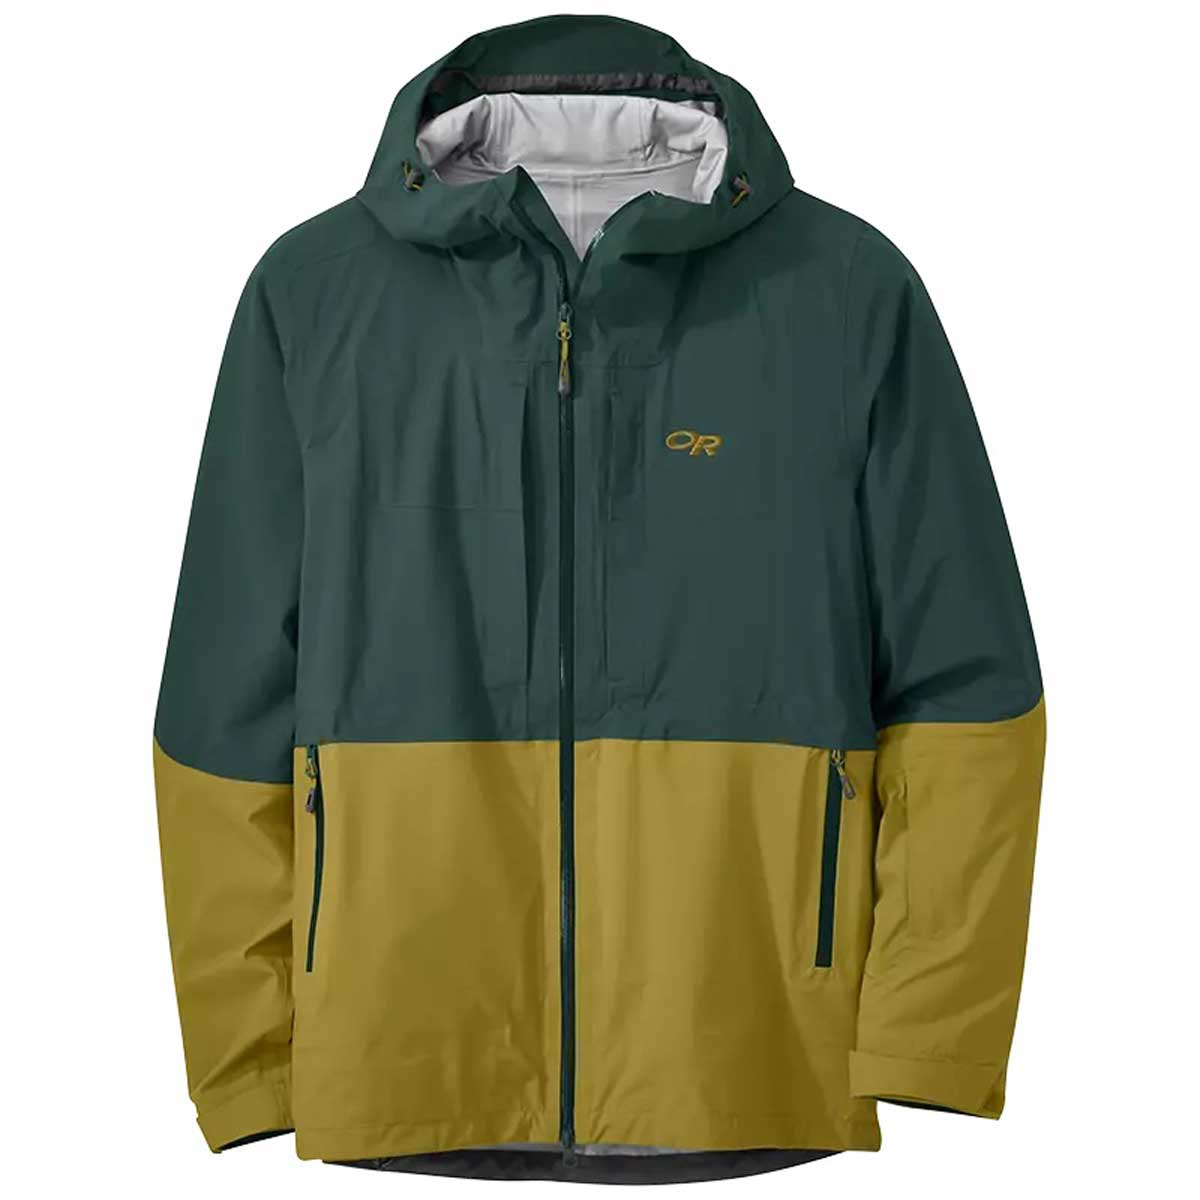 Outdoor Research Men's Carbide Jacket in Fir and Lichen